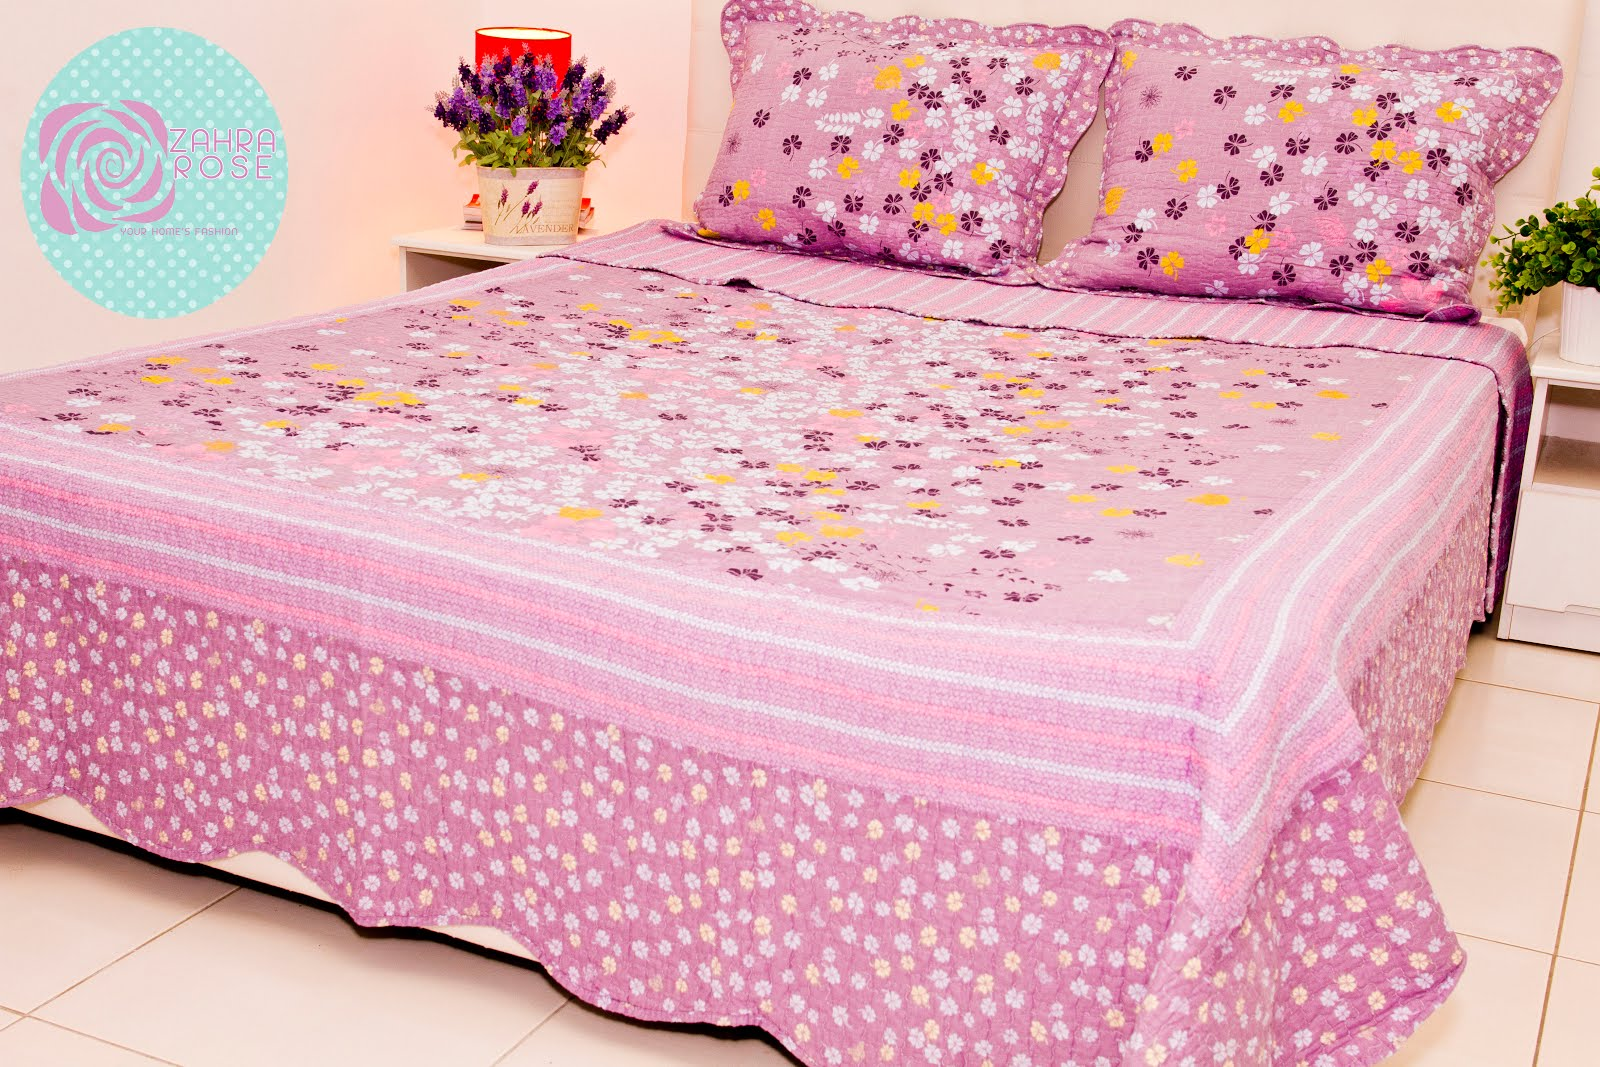 Bed sheet design patchwork - Zr 003